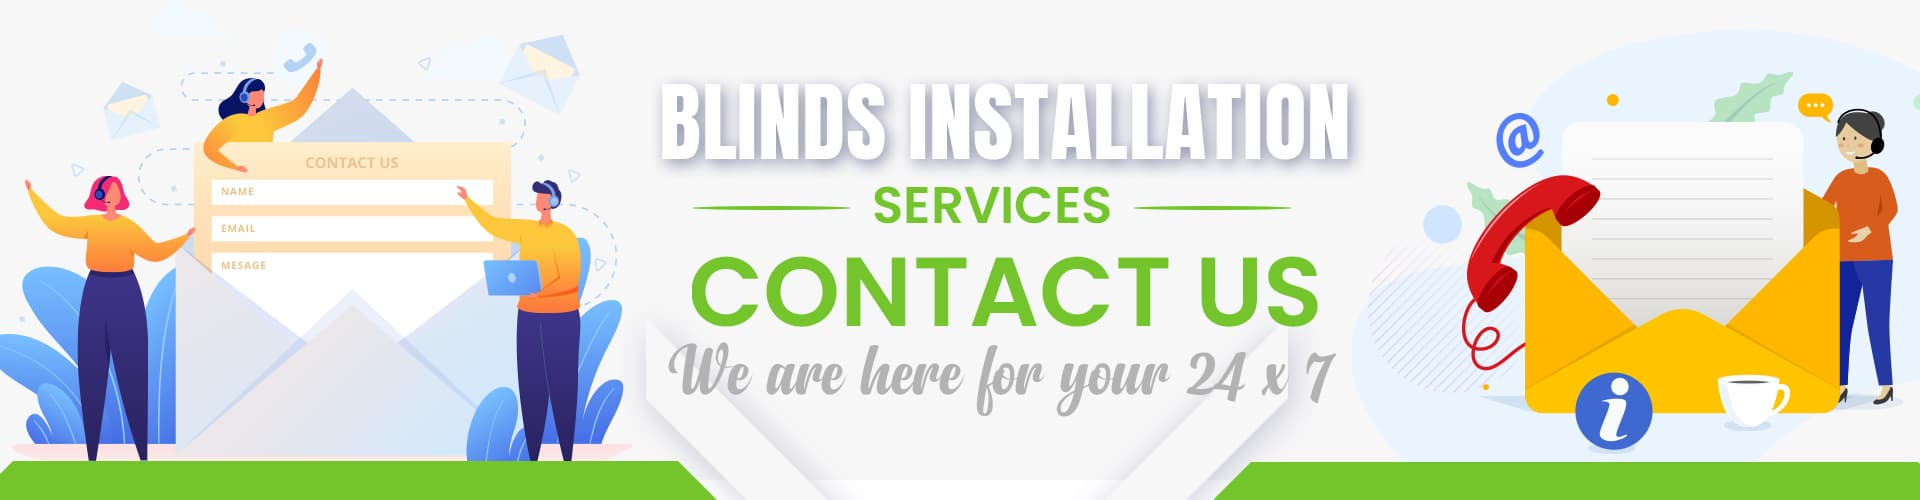 Get A Quote Blinds Installation Services